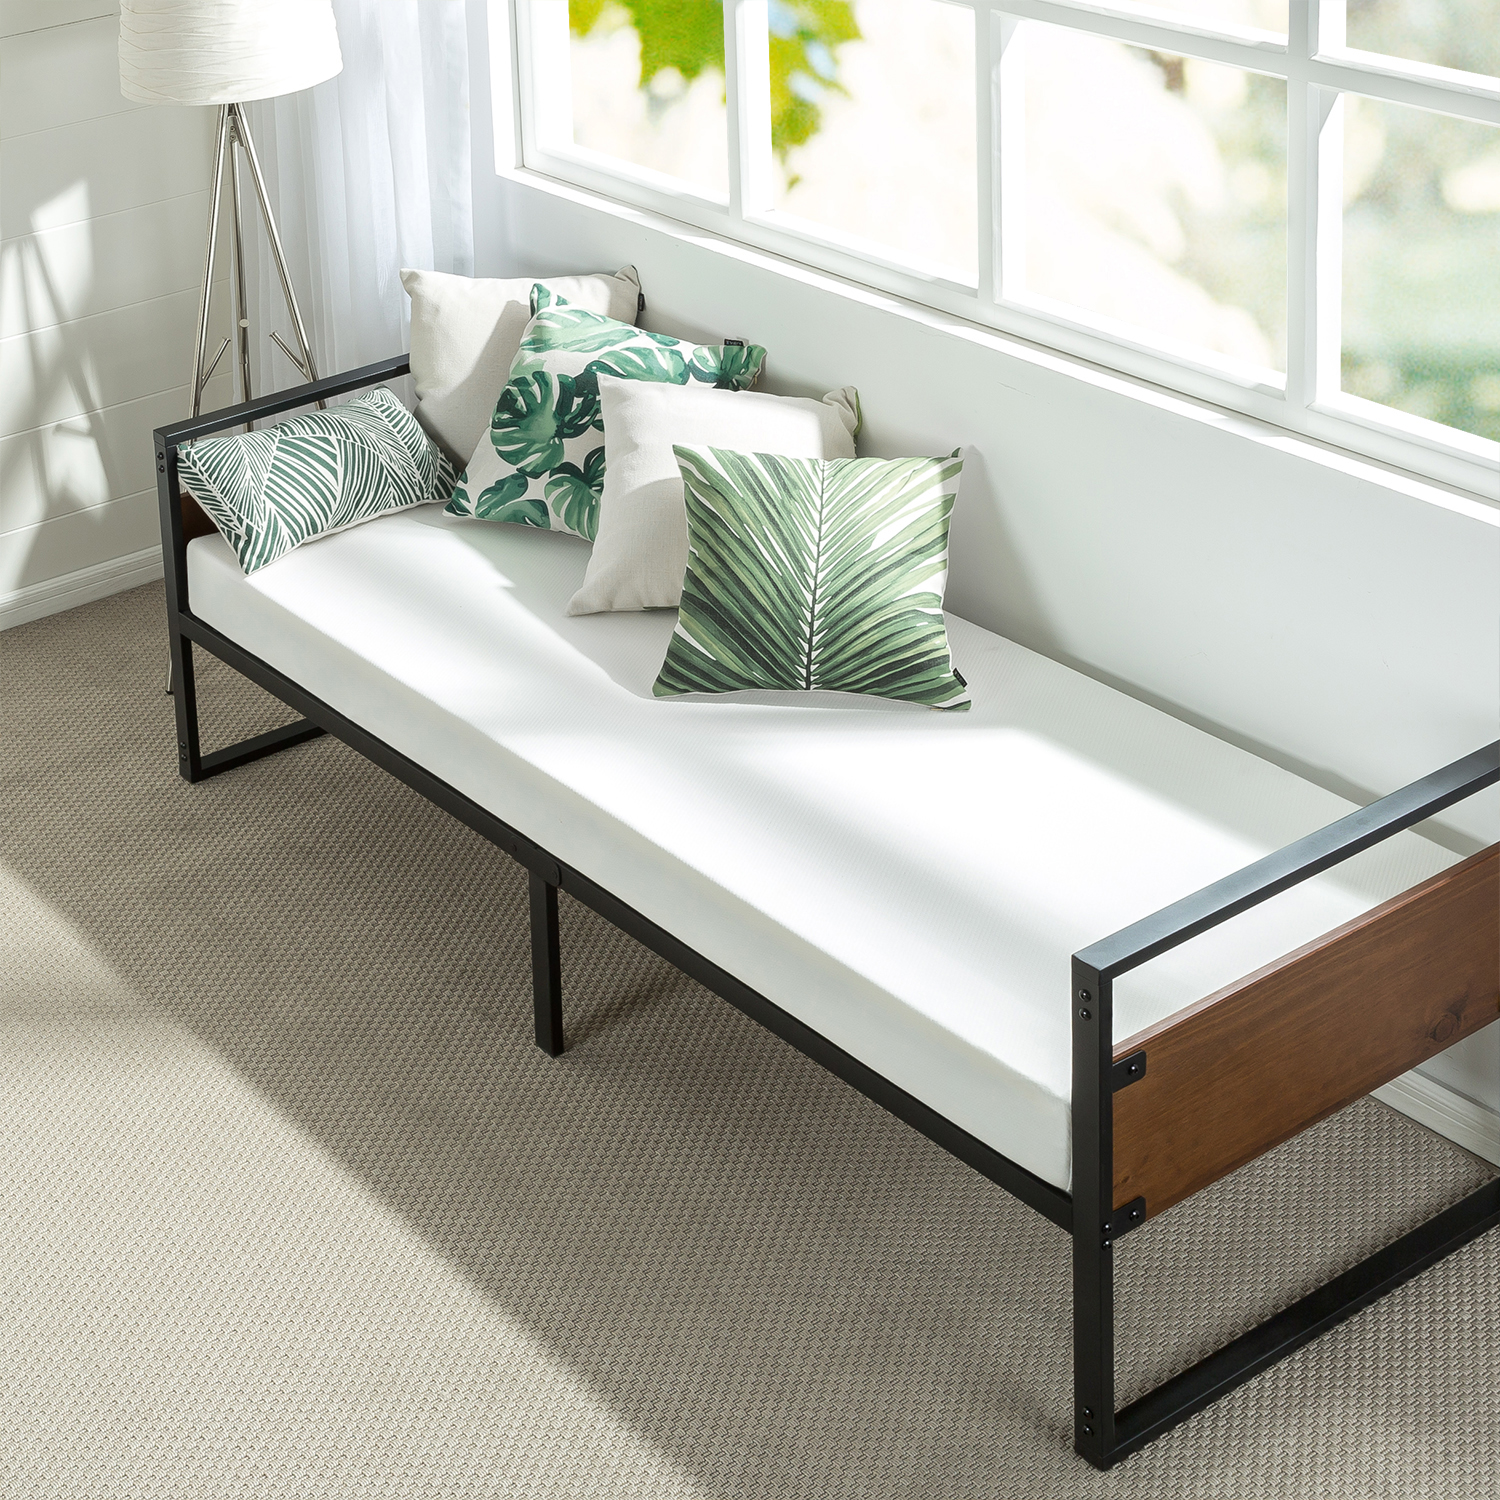 Day Beds For Sale Zinus Daybeds On Sale Walmart